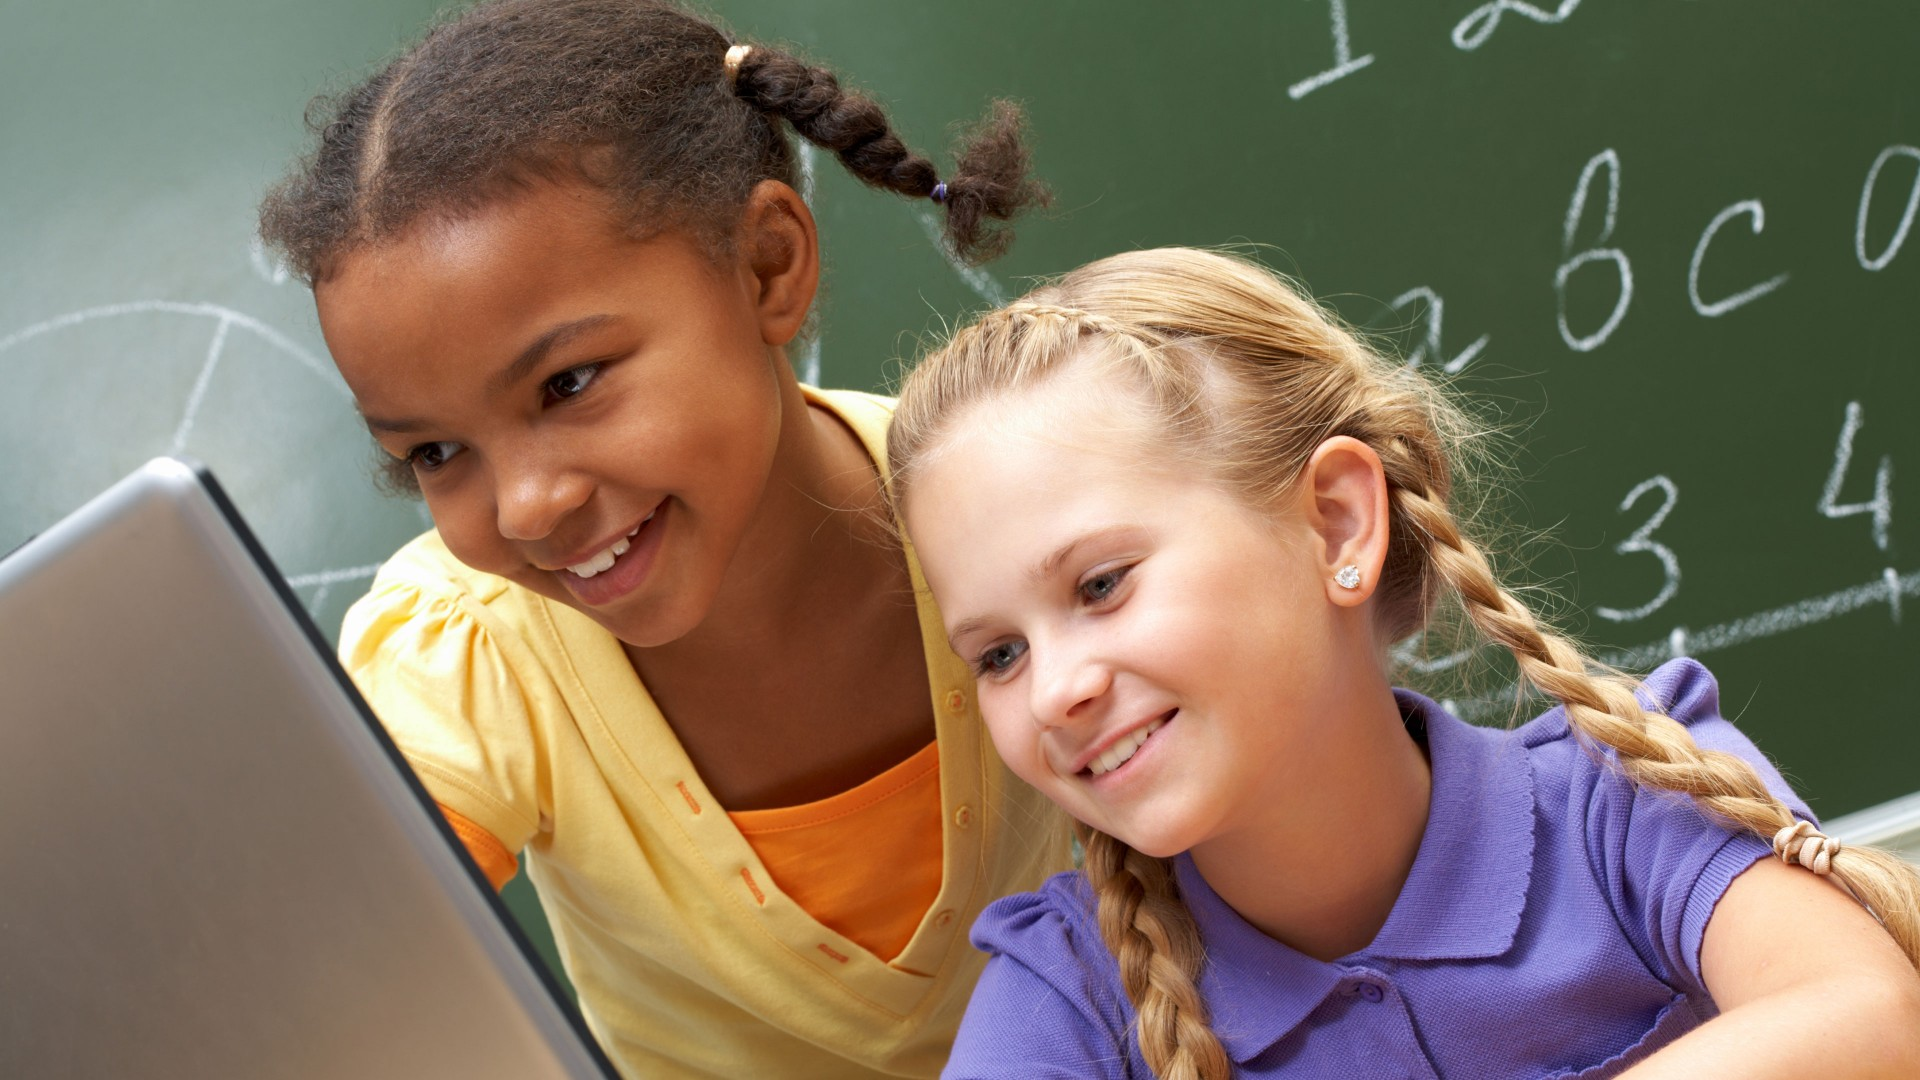 Two smiling school-age girls, one black, one white, loot at a laptop with a blackboard in the background